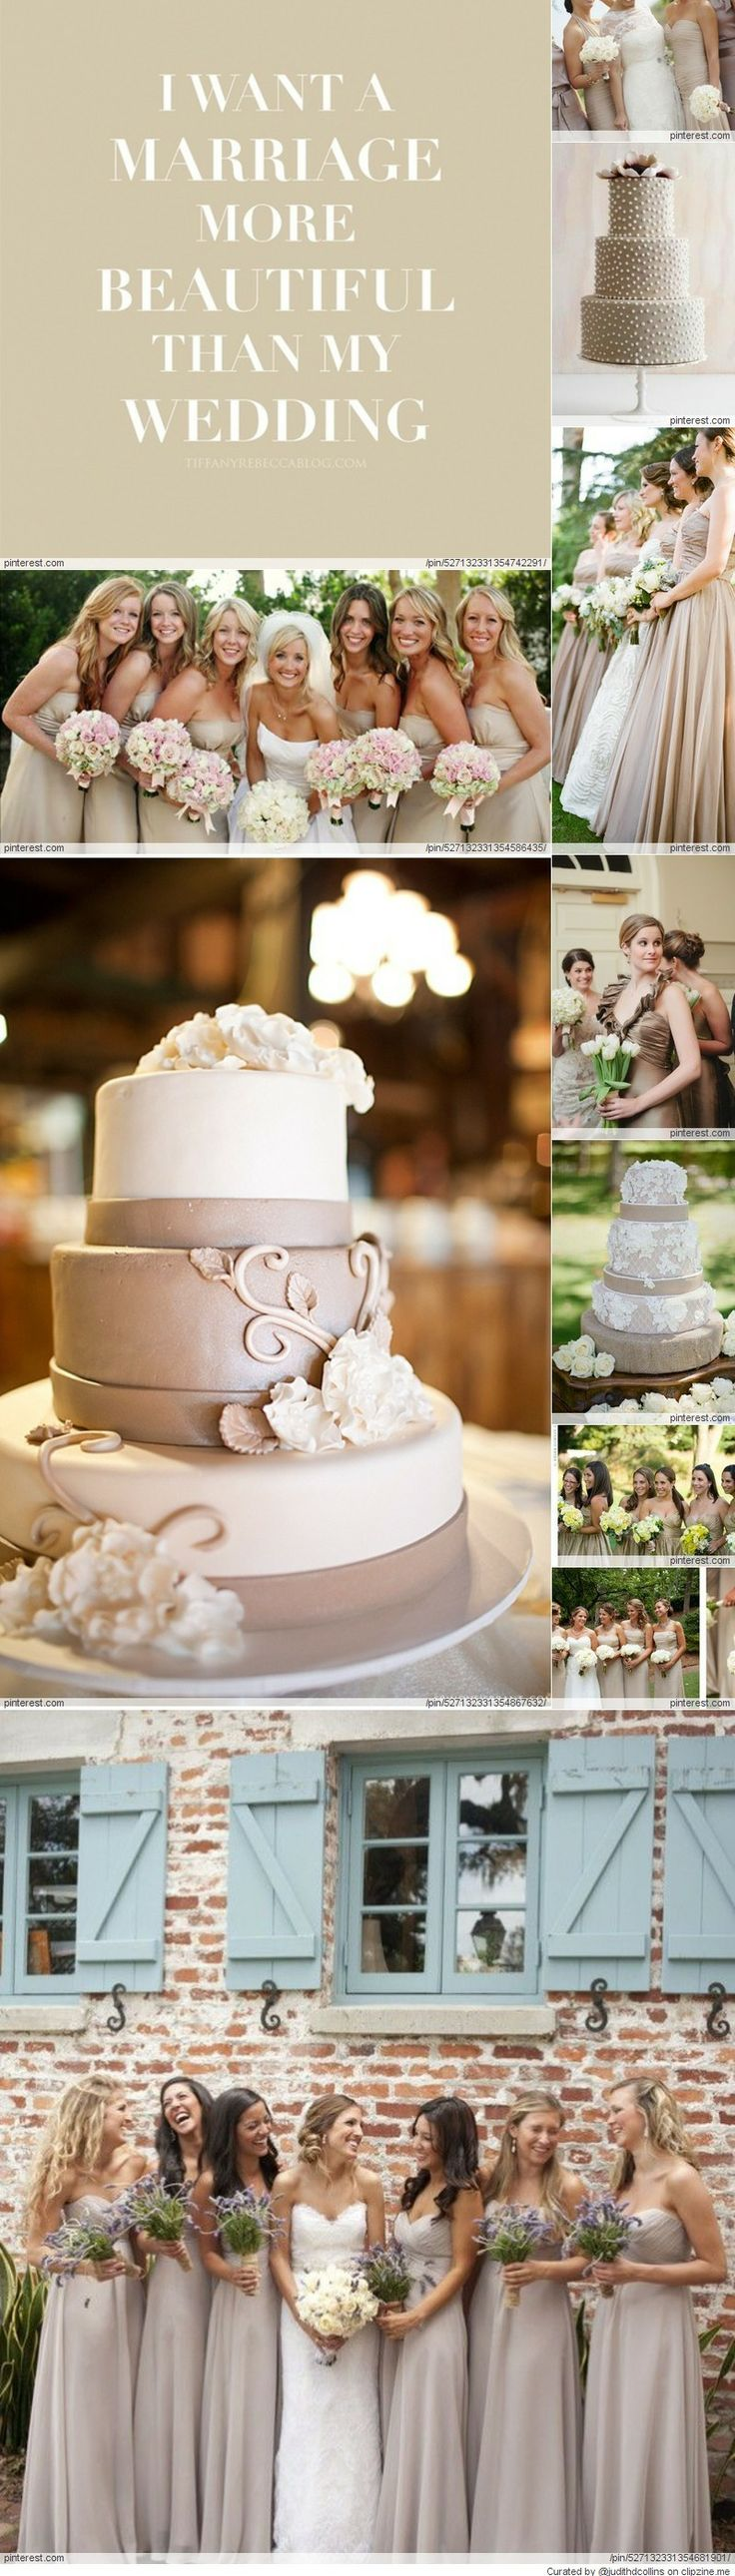 Taupe Weddings - Not loving the top ones but the bottom picture is beautiful.